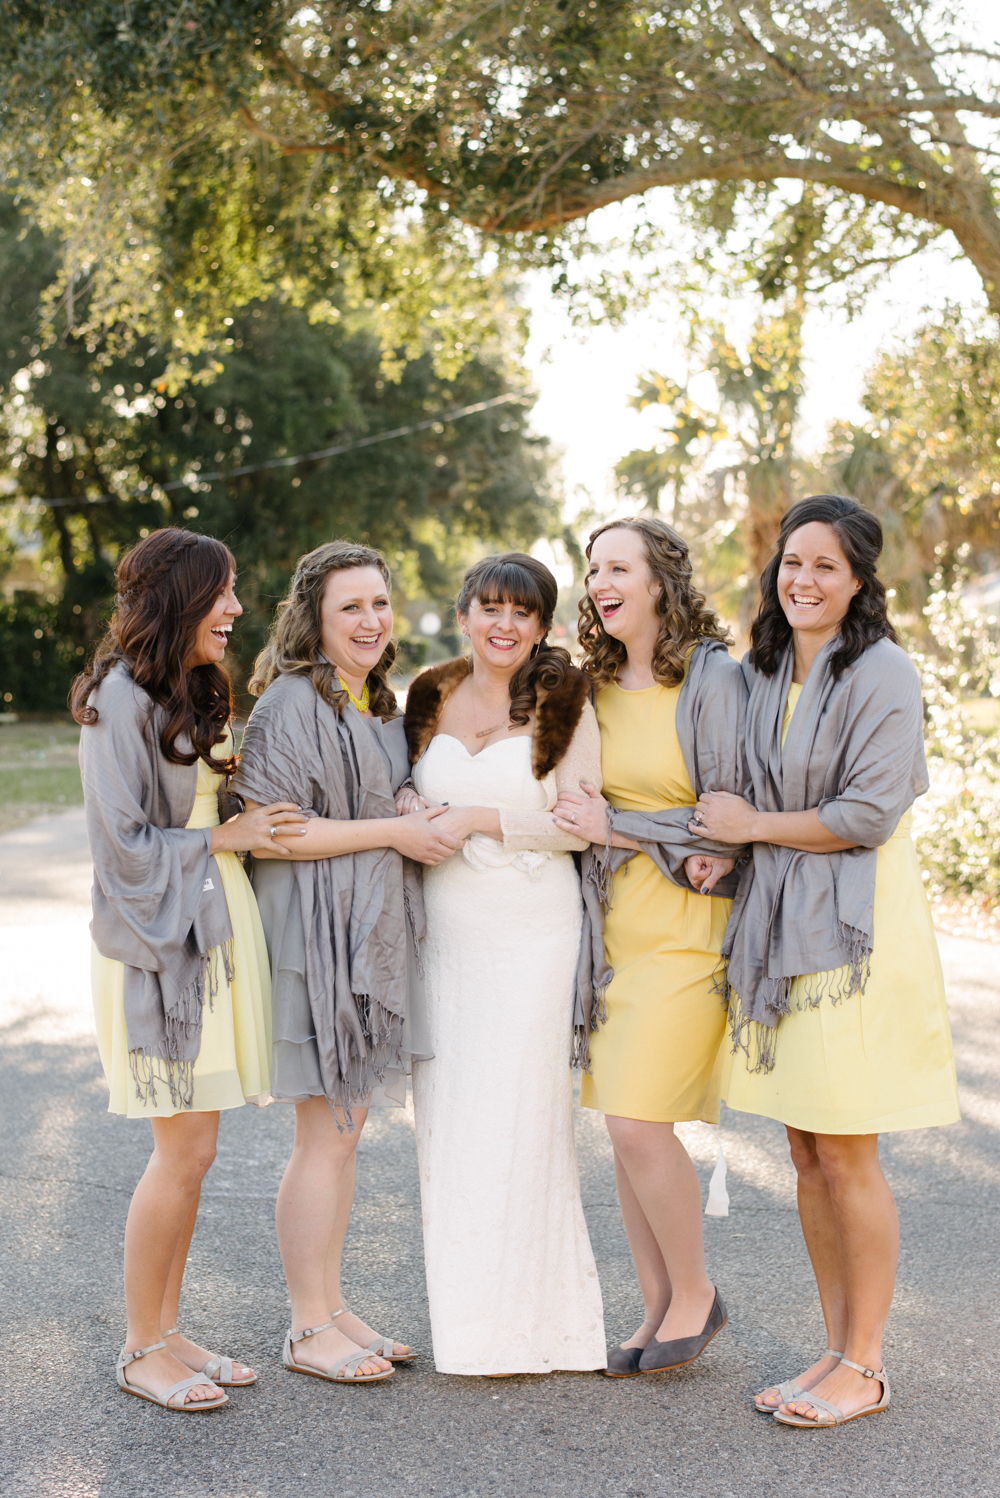 Yellow bridesmaids dresses with grey wraps by Sean Money + Elizabeth Fay.